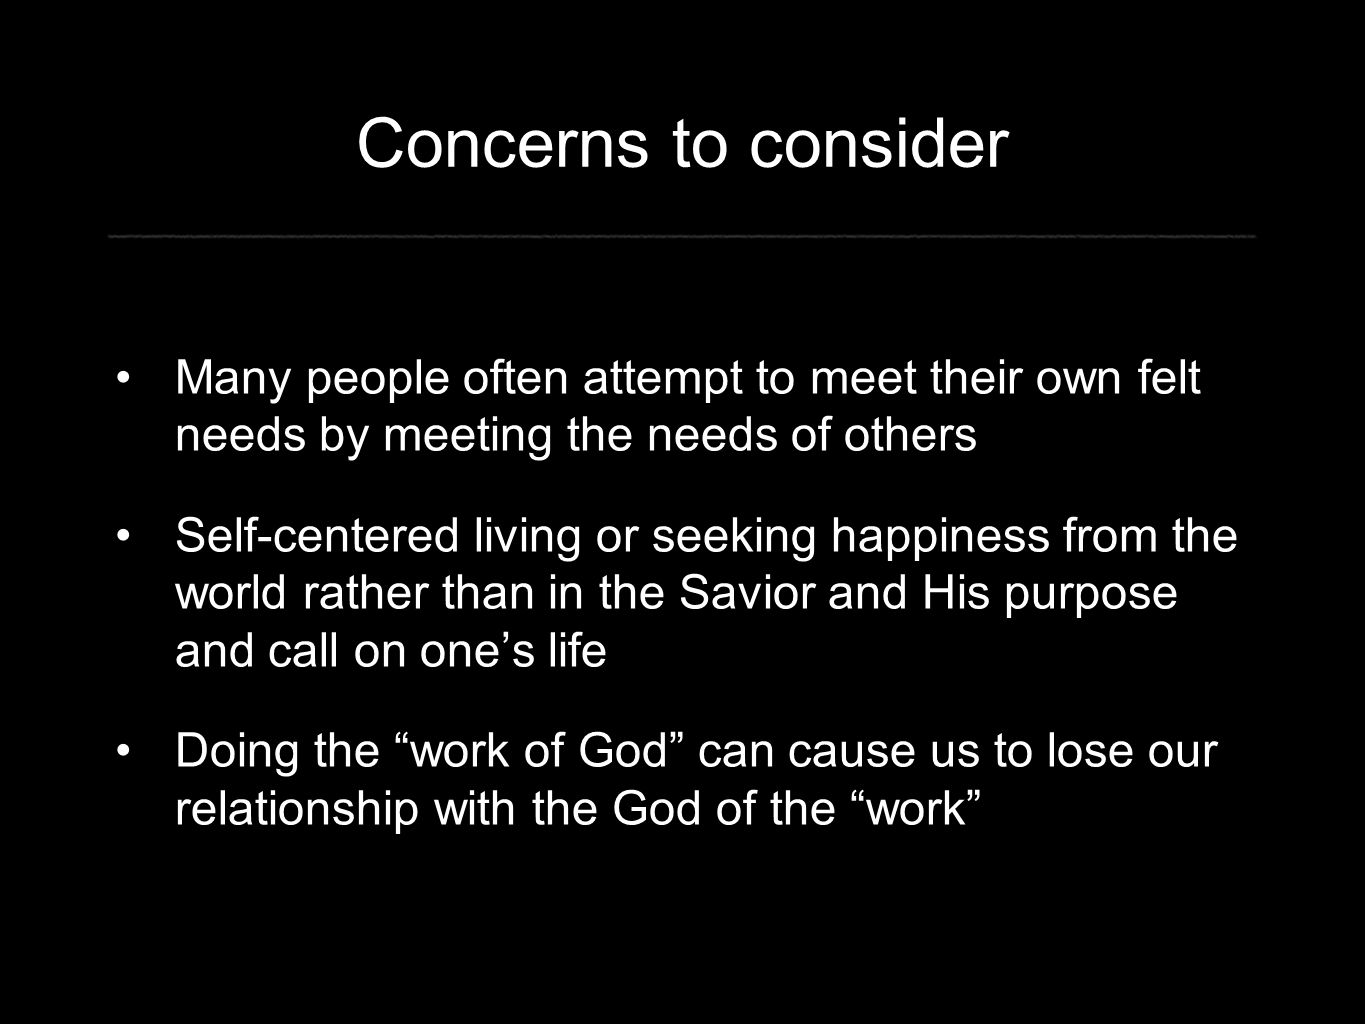 Concerns to consider Many people often attempt to meet their own felt needs by meeting the needs of others Self-centered living or seeking happiness from the world rather than in the Savior and His purpose and call on one's life Doing the work of God can cause us to lose our relationship with the God of the work